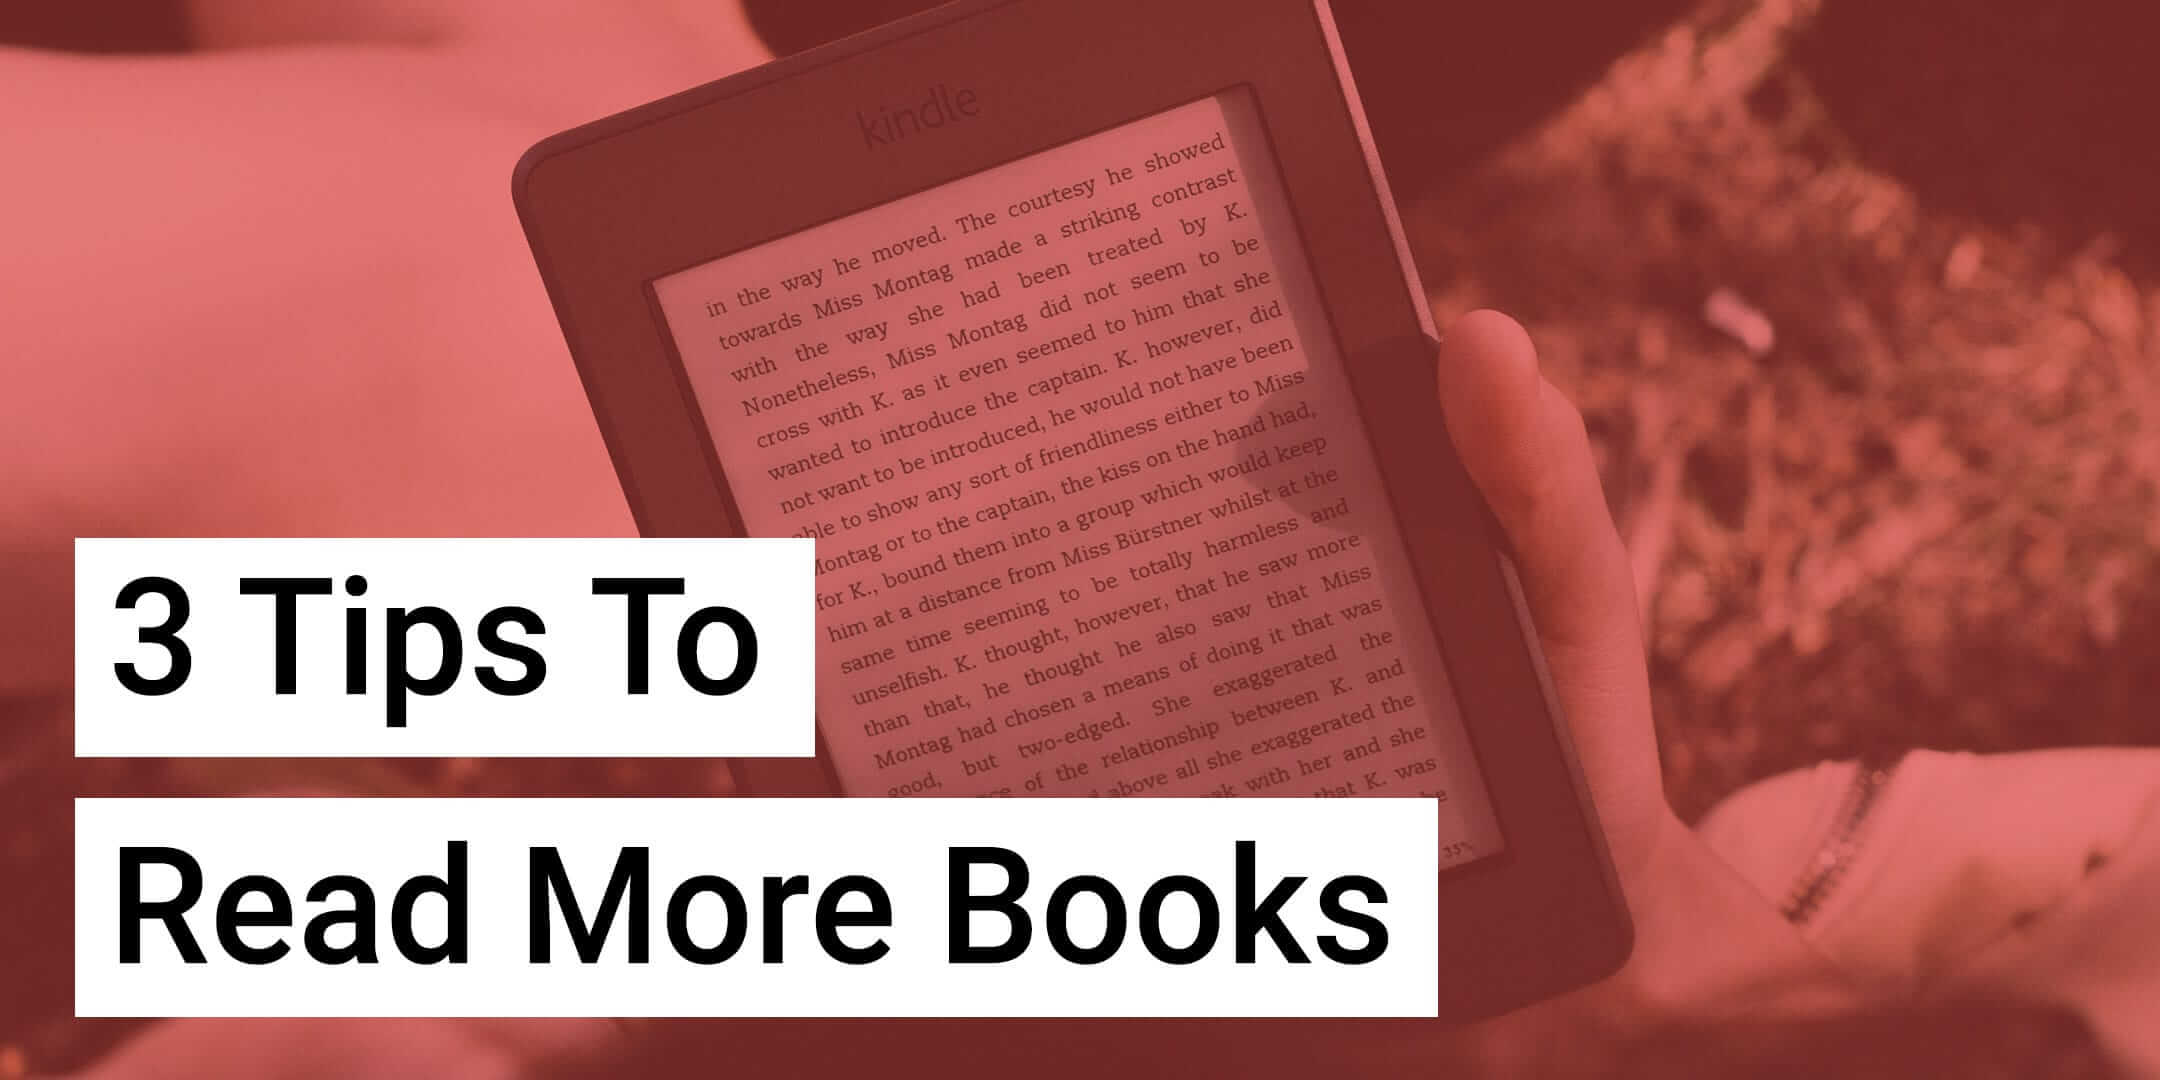 3 Tips to Read More Books